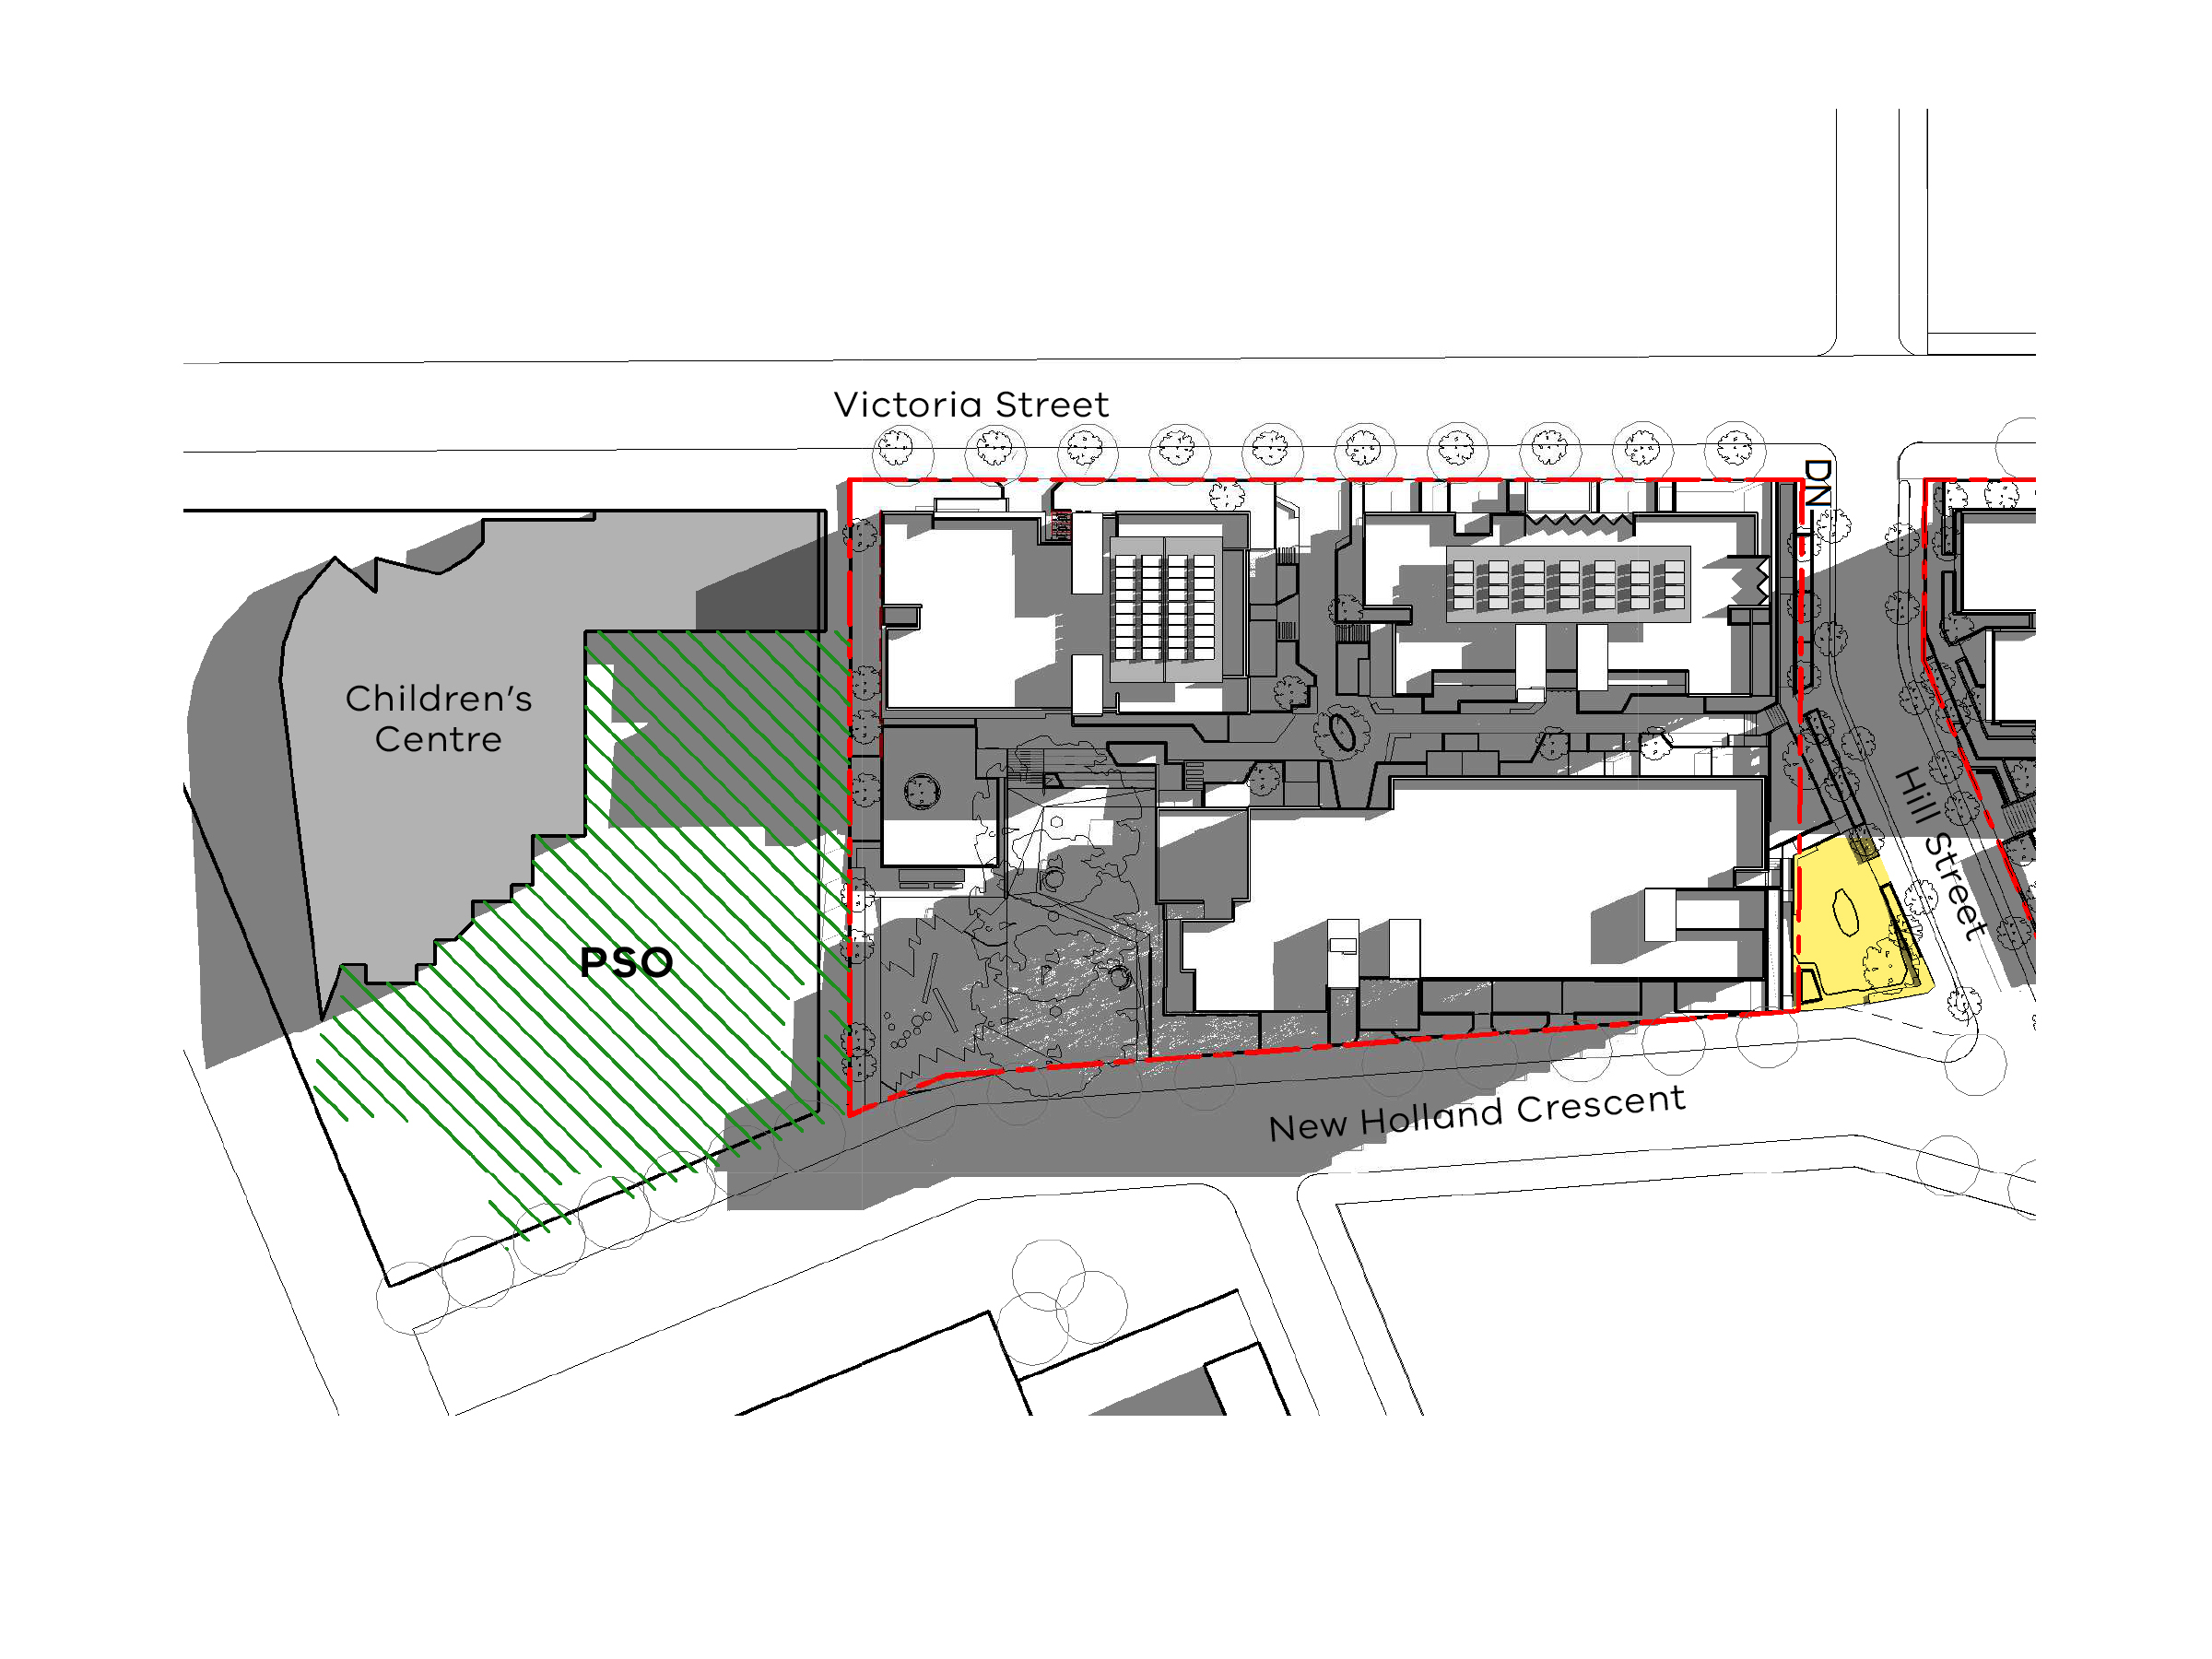 Diagram showing the shadows created by the south site of the new development in June at 12pm